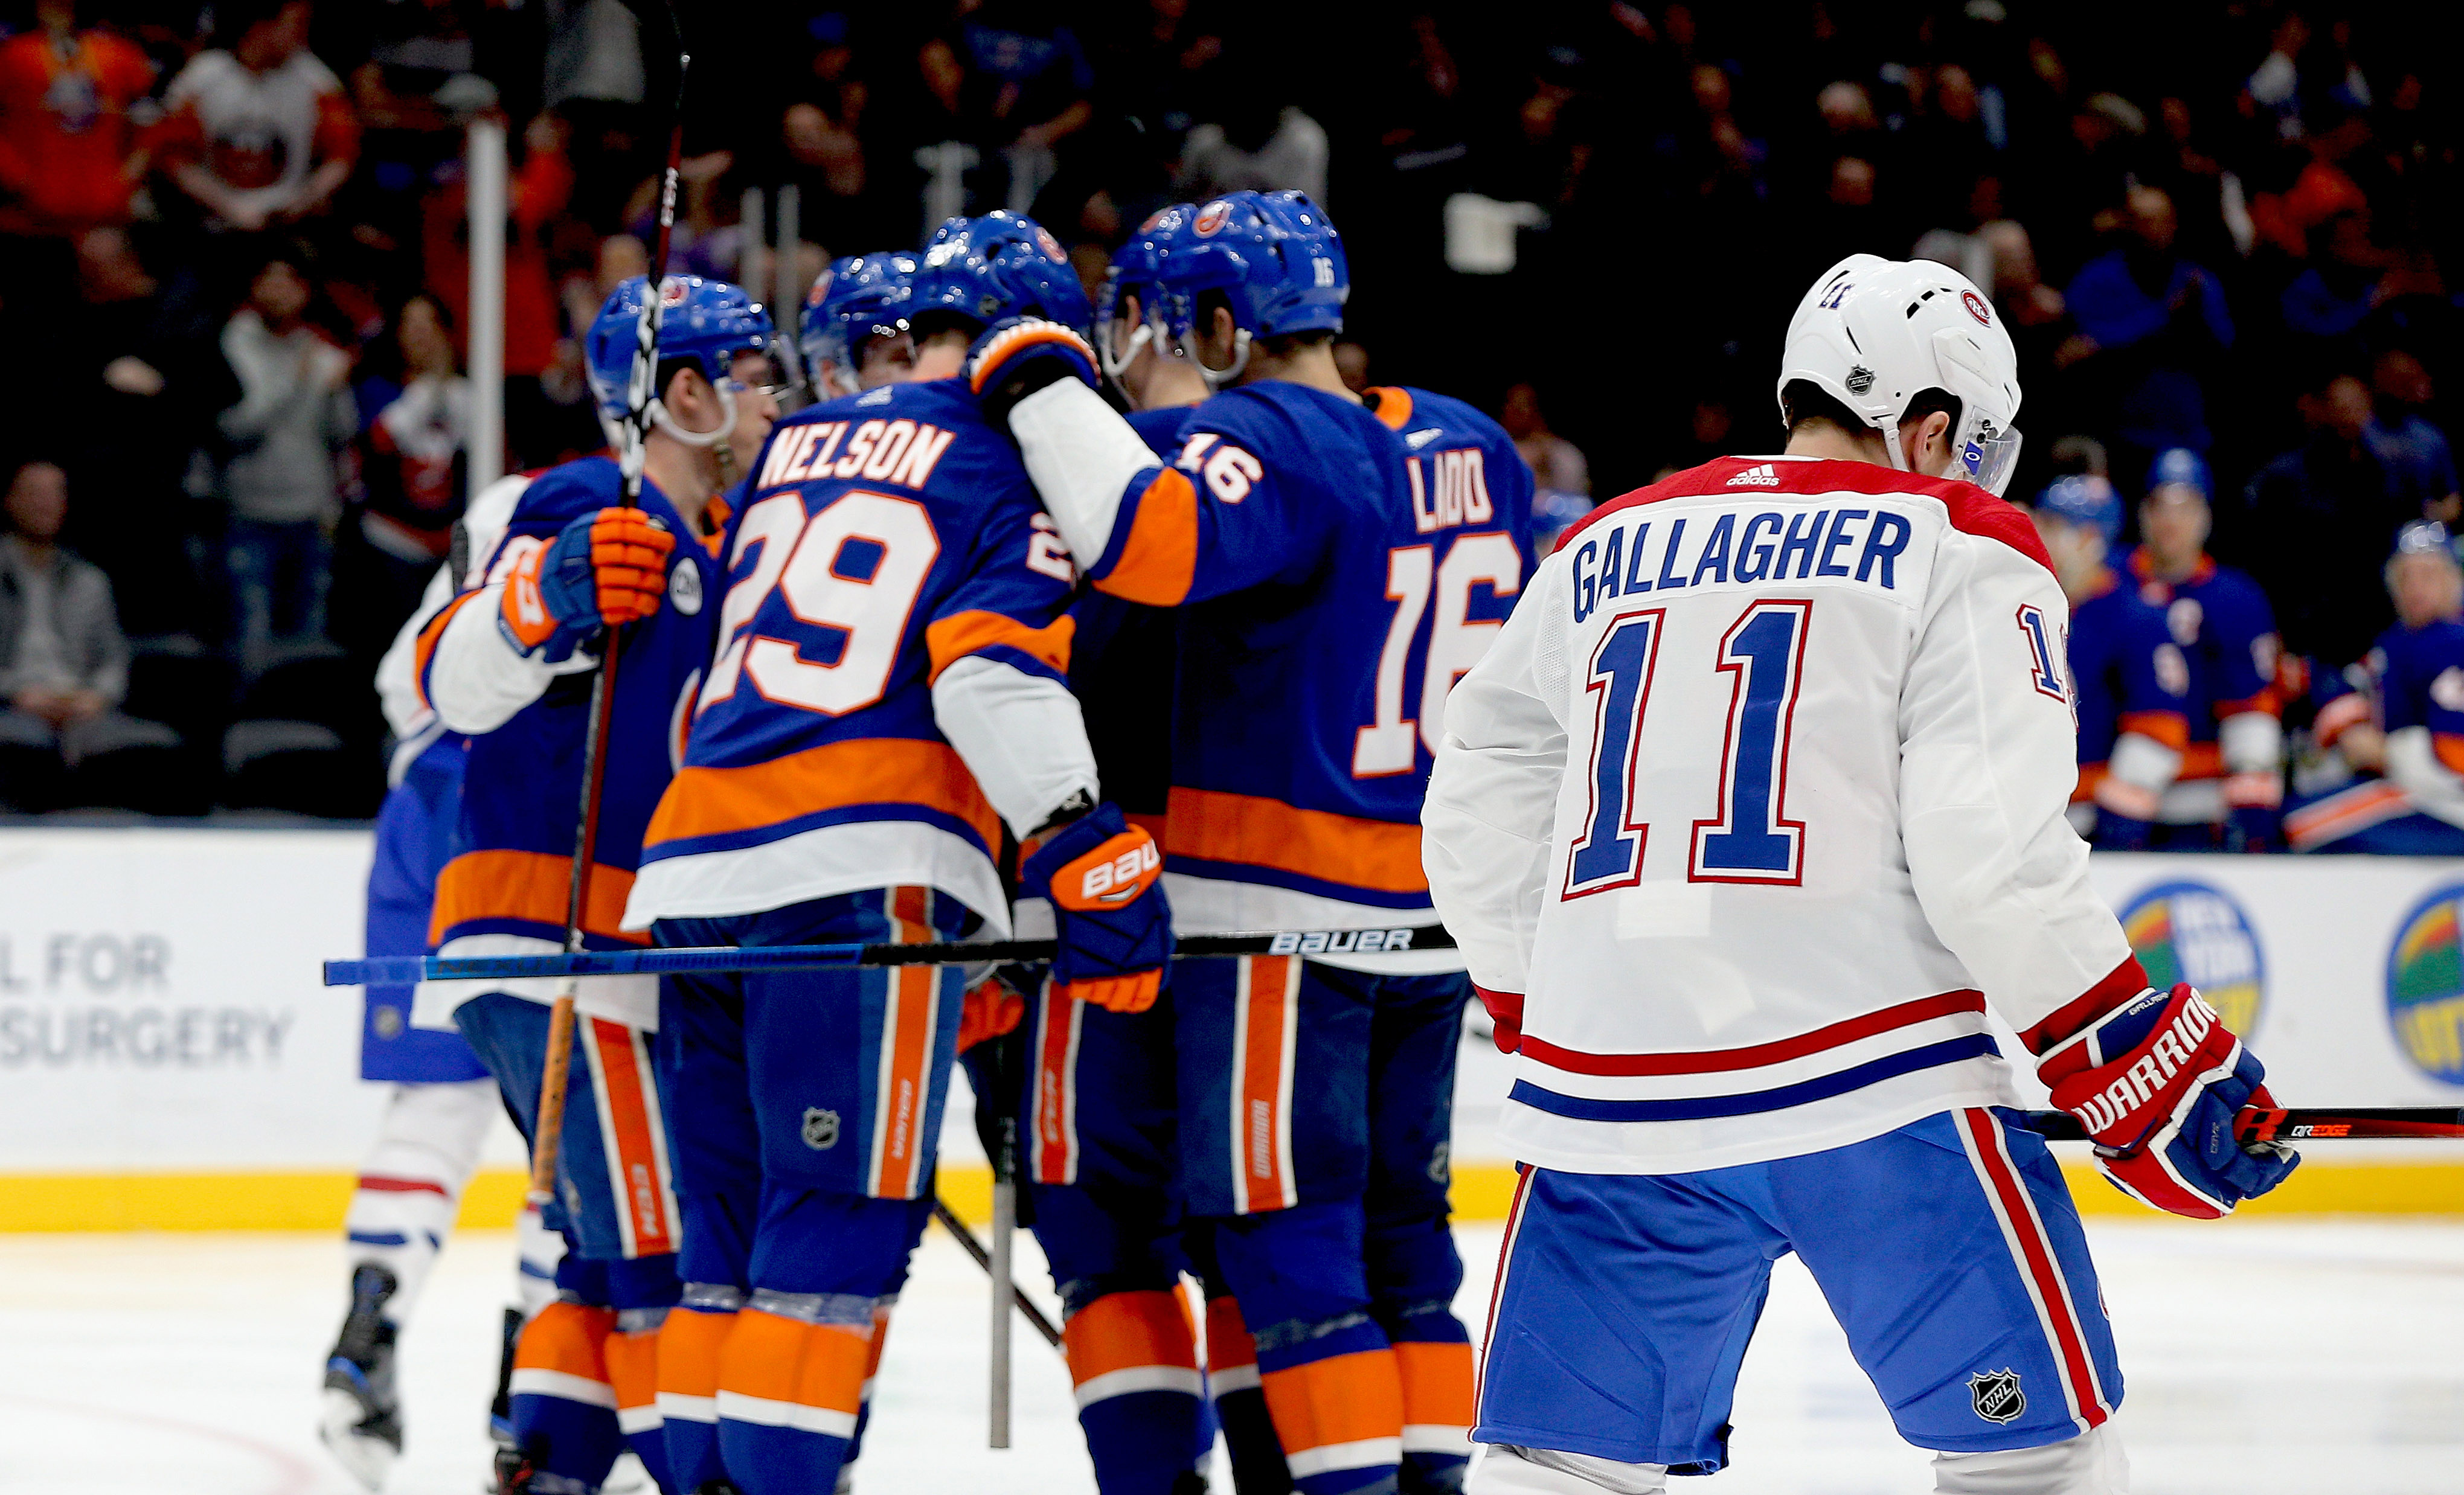 Mar 14, 2019; Uniondale, NY, USA; Montreal Canadiens right wing Brendan Gallagher (11) skates away as the New York Islanders celebrate a goal during the second period at Nassau Veterans Memorial Coliseum. Mandatory Credit: Andy Marlin-USA TODAY Sports